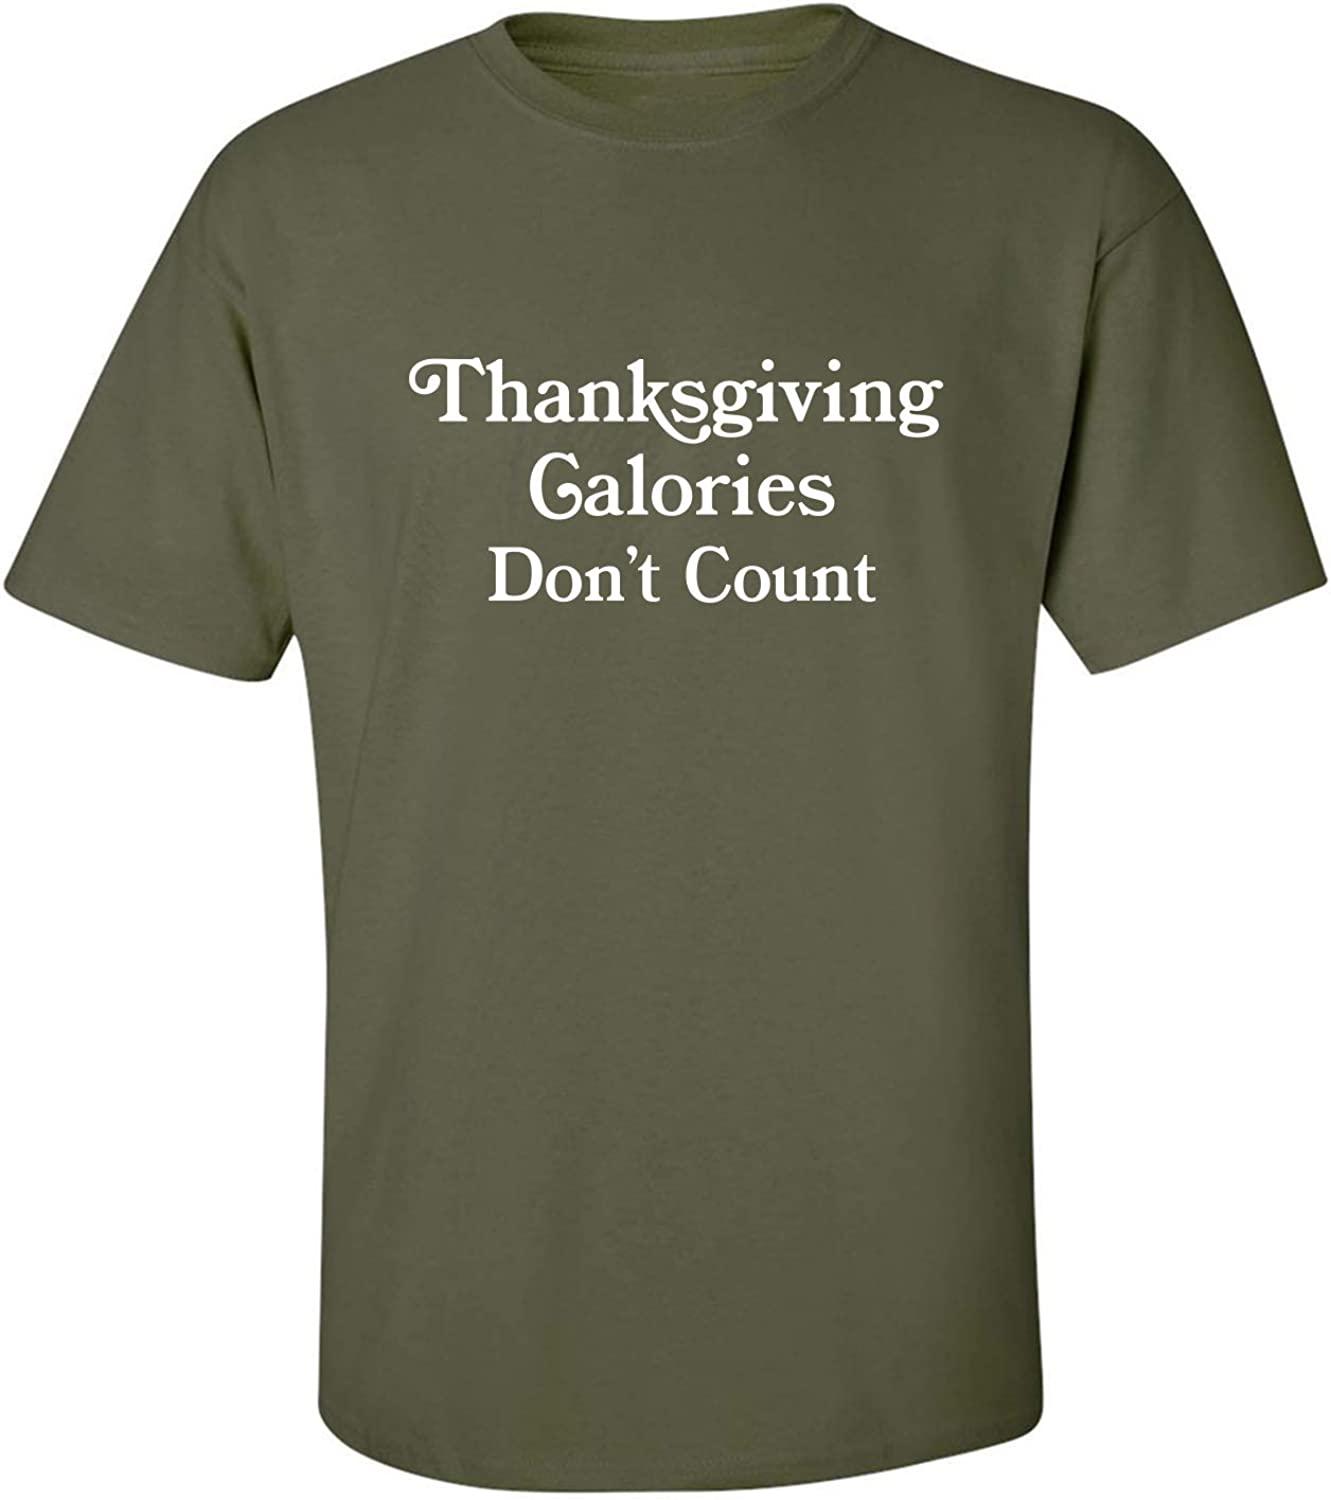 Thanksgiving Calories Don't Count Adult T-Shirt in Military Green - XXXX-Large